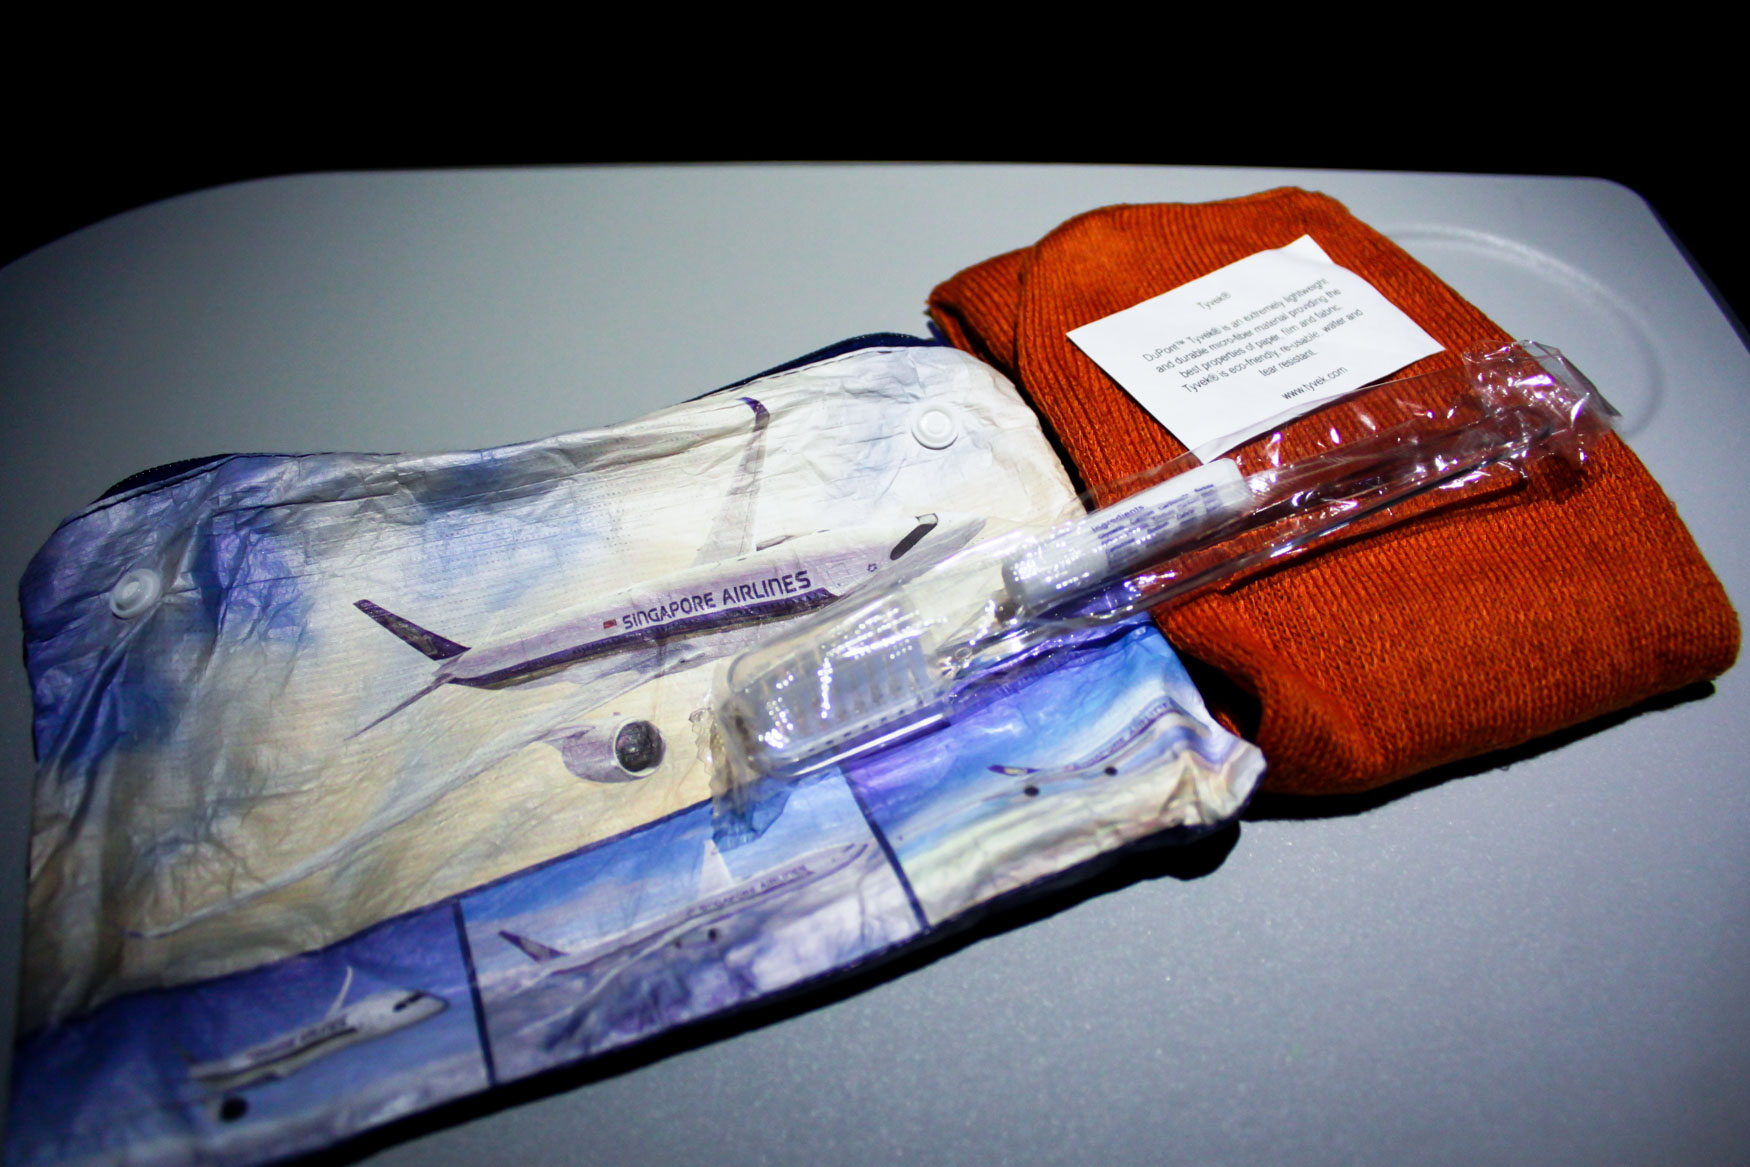 Singapore Airlines Amenity Kit